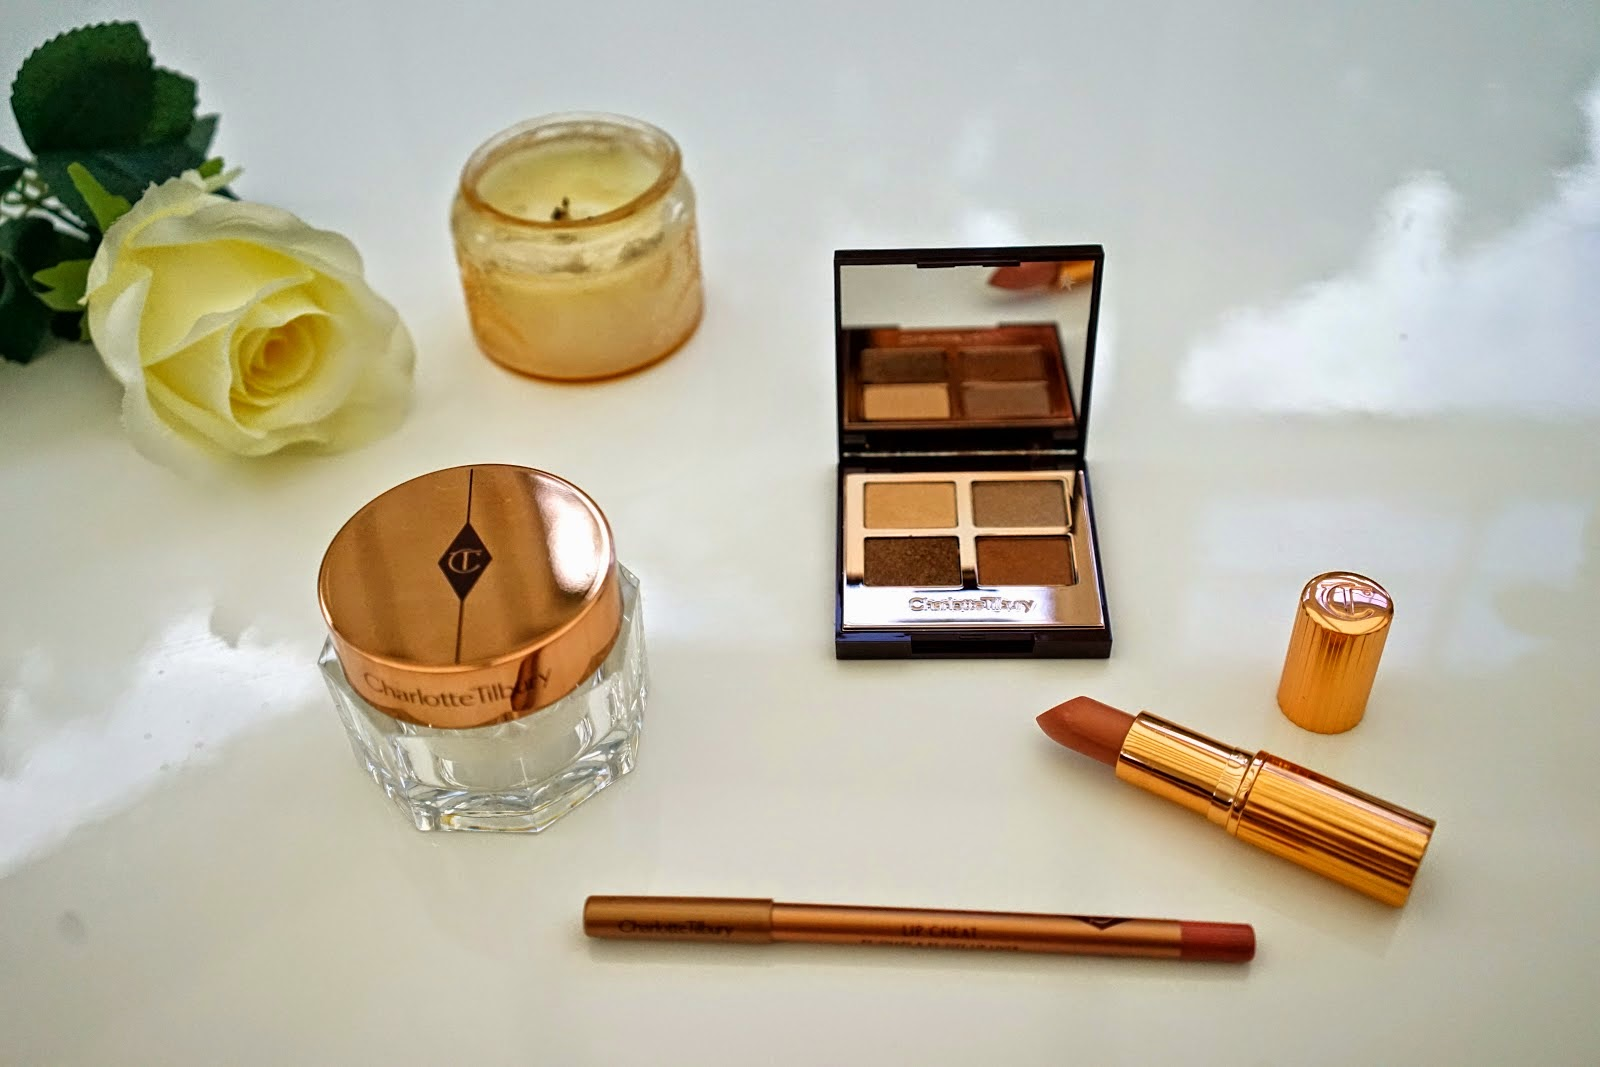 charlotte tilbury make up collection